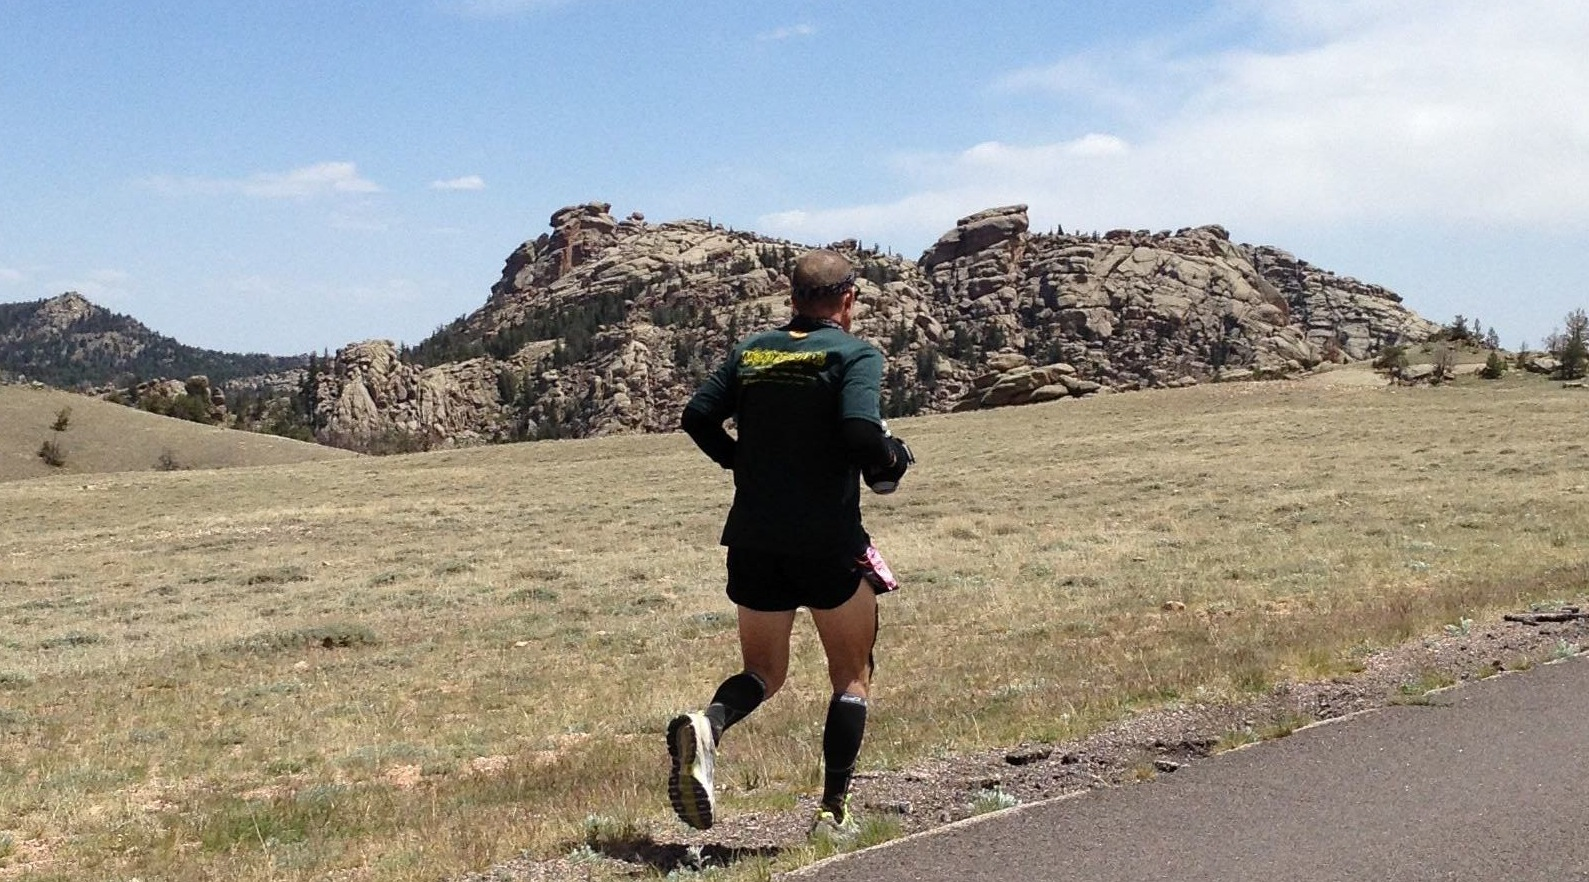 RACE REPORT: Rocky Mountain Double Marathon